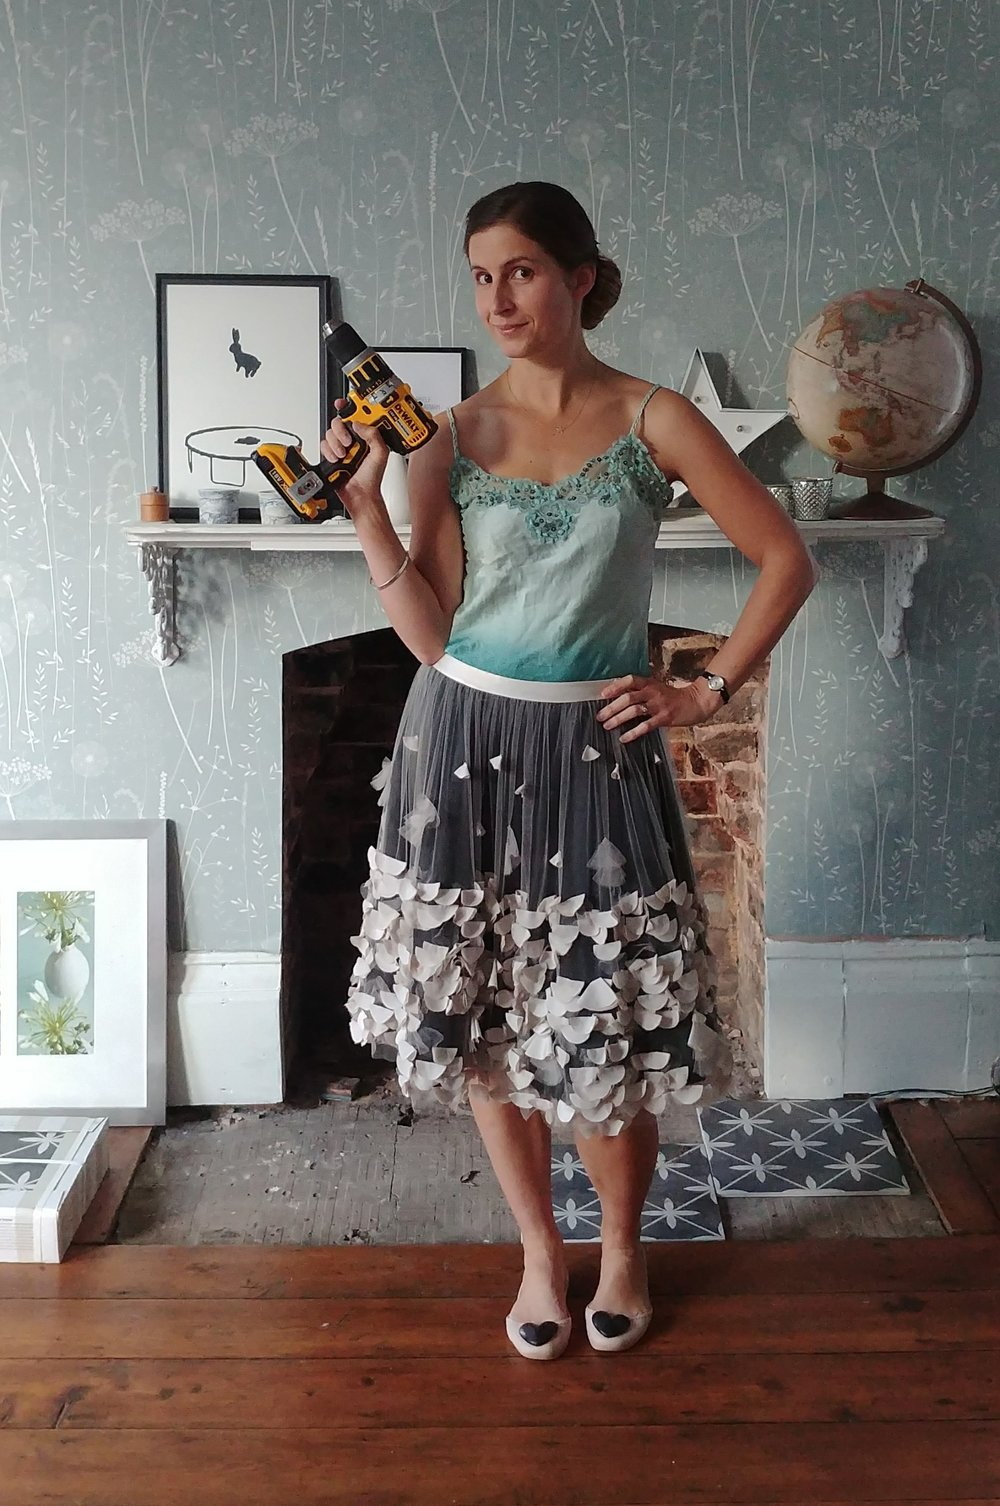 Welcome to Simply The Nest - I'm Alice, and I like tutus and power tools.